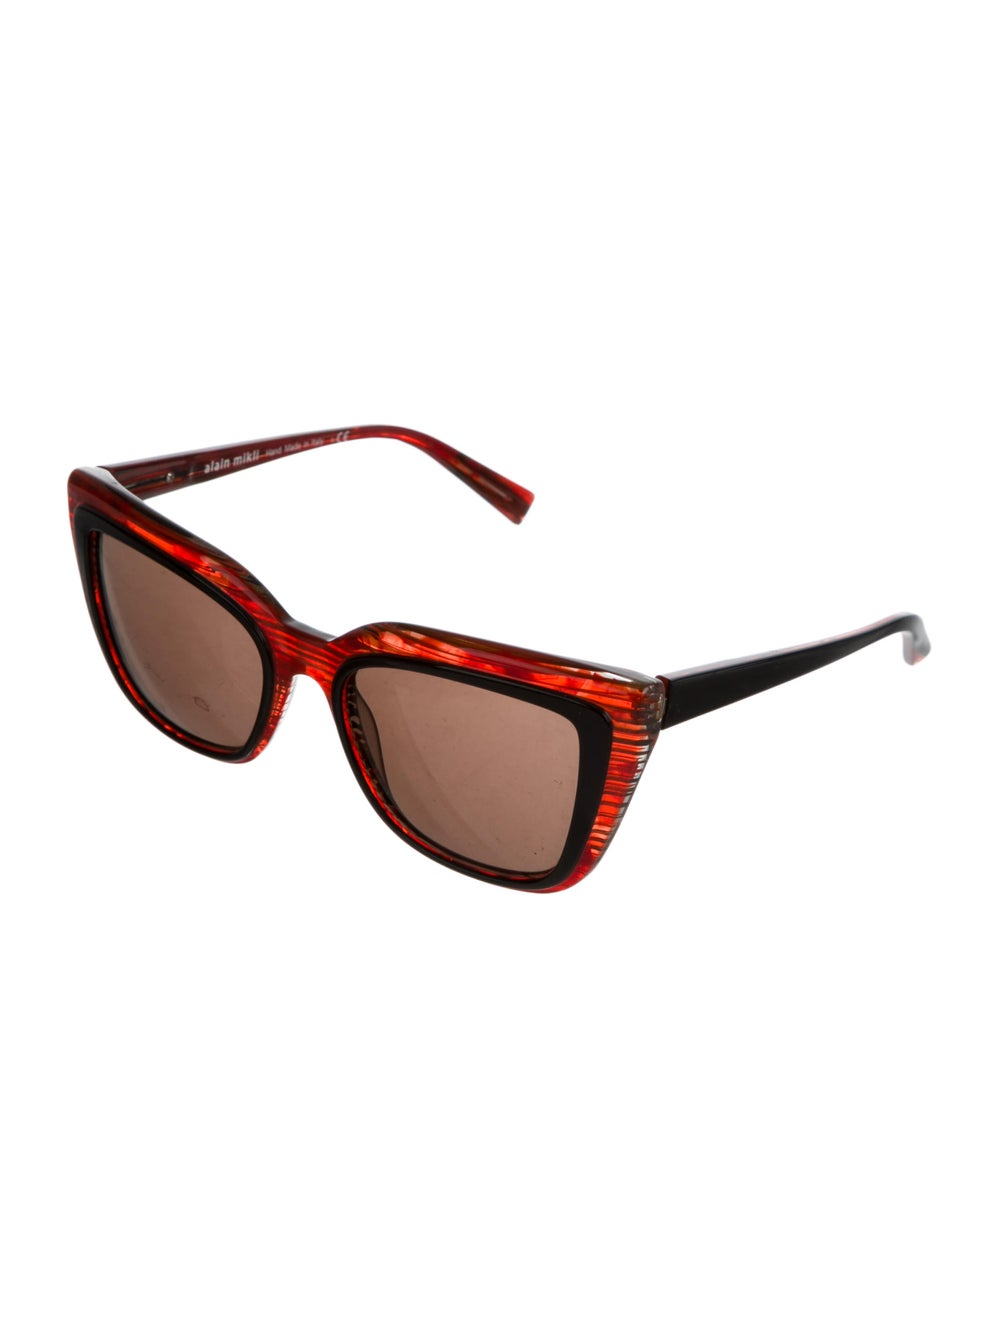 Alain Mikli Square Tinted Sunglasses Red - image 2